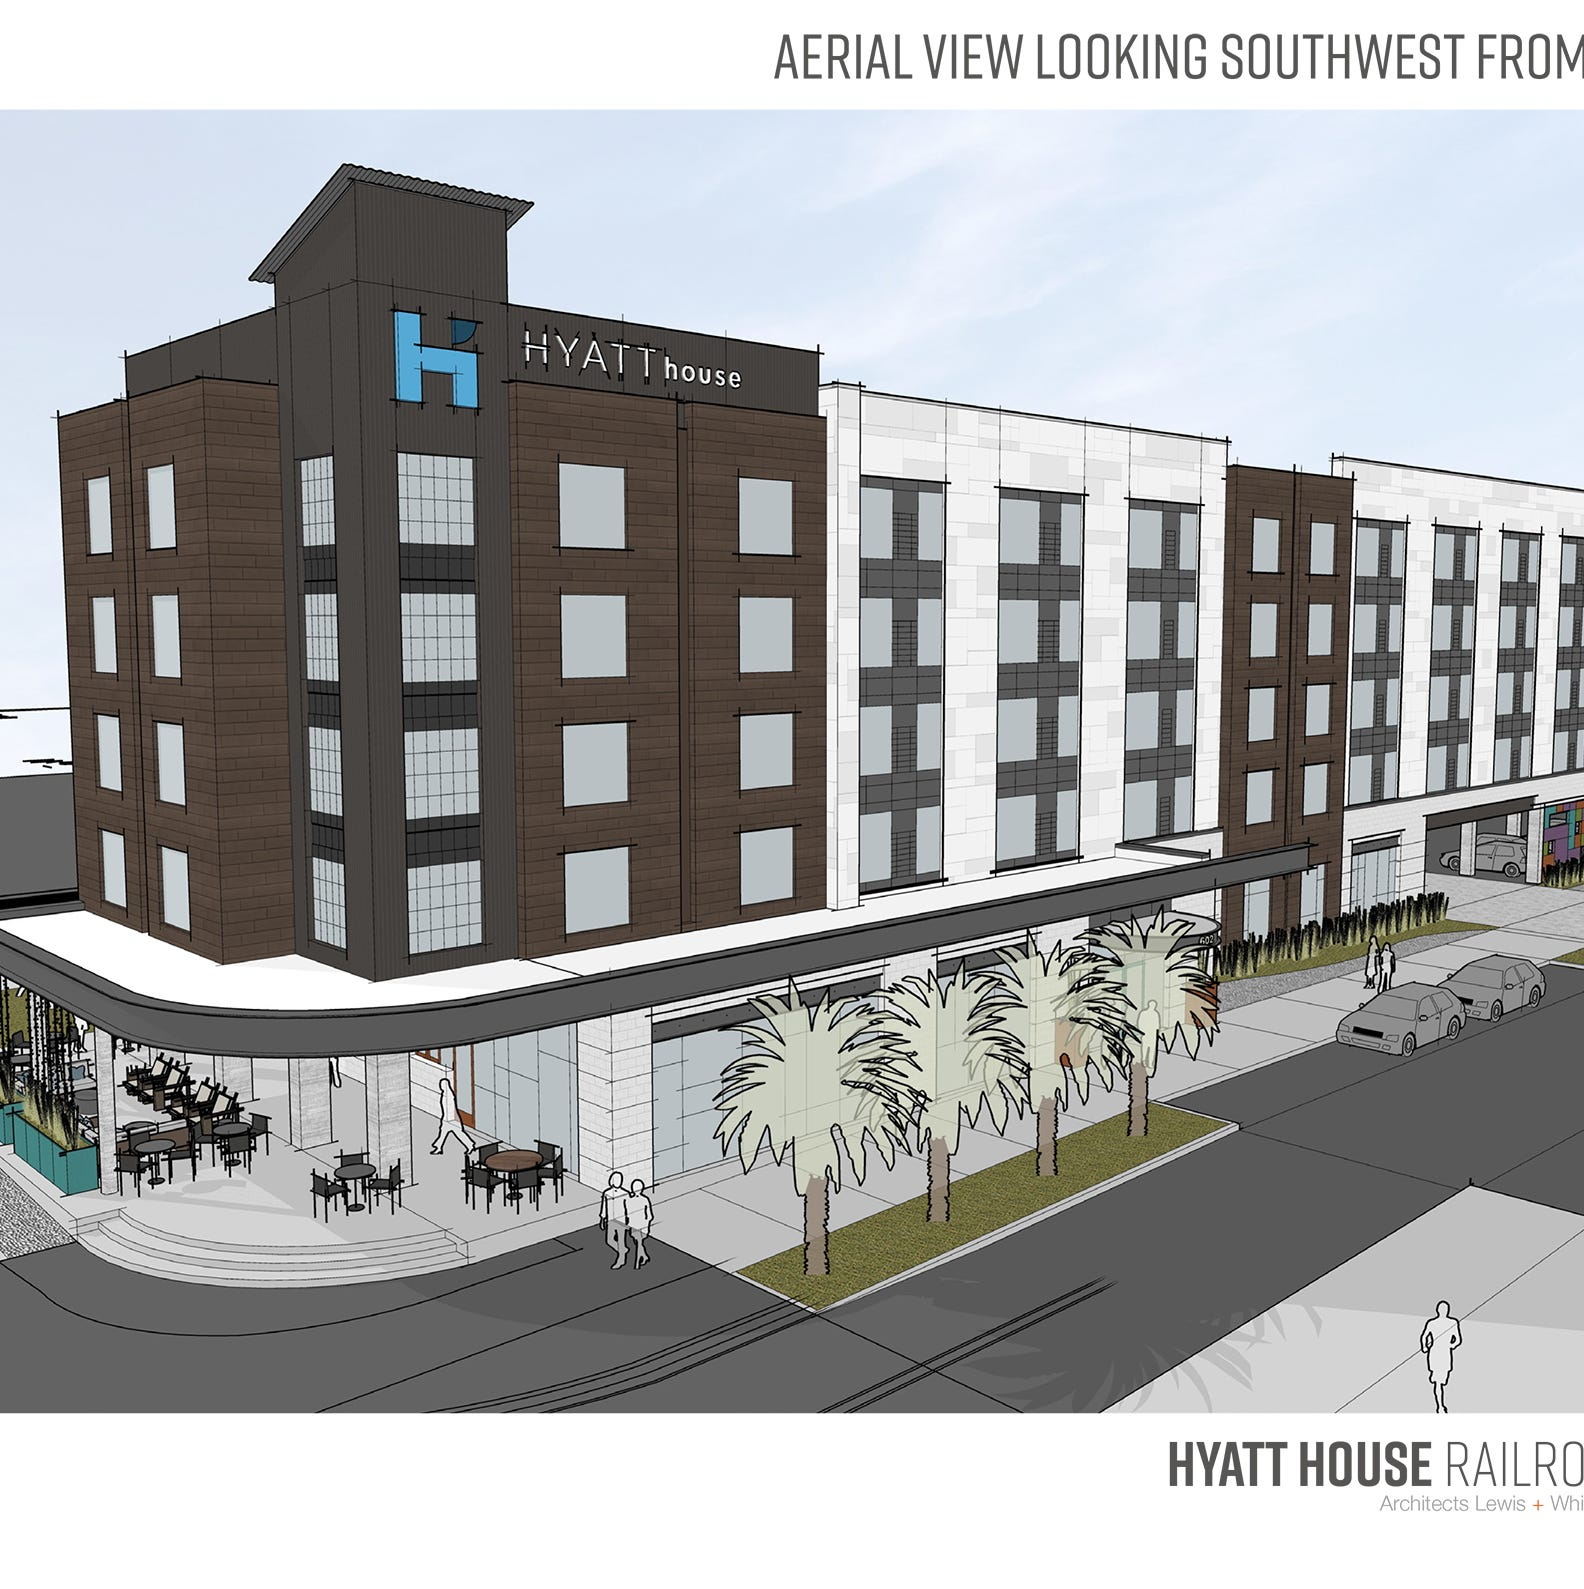 New Hyatt House Hotel brings excitement, anxiety for Railroad Square